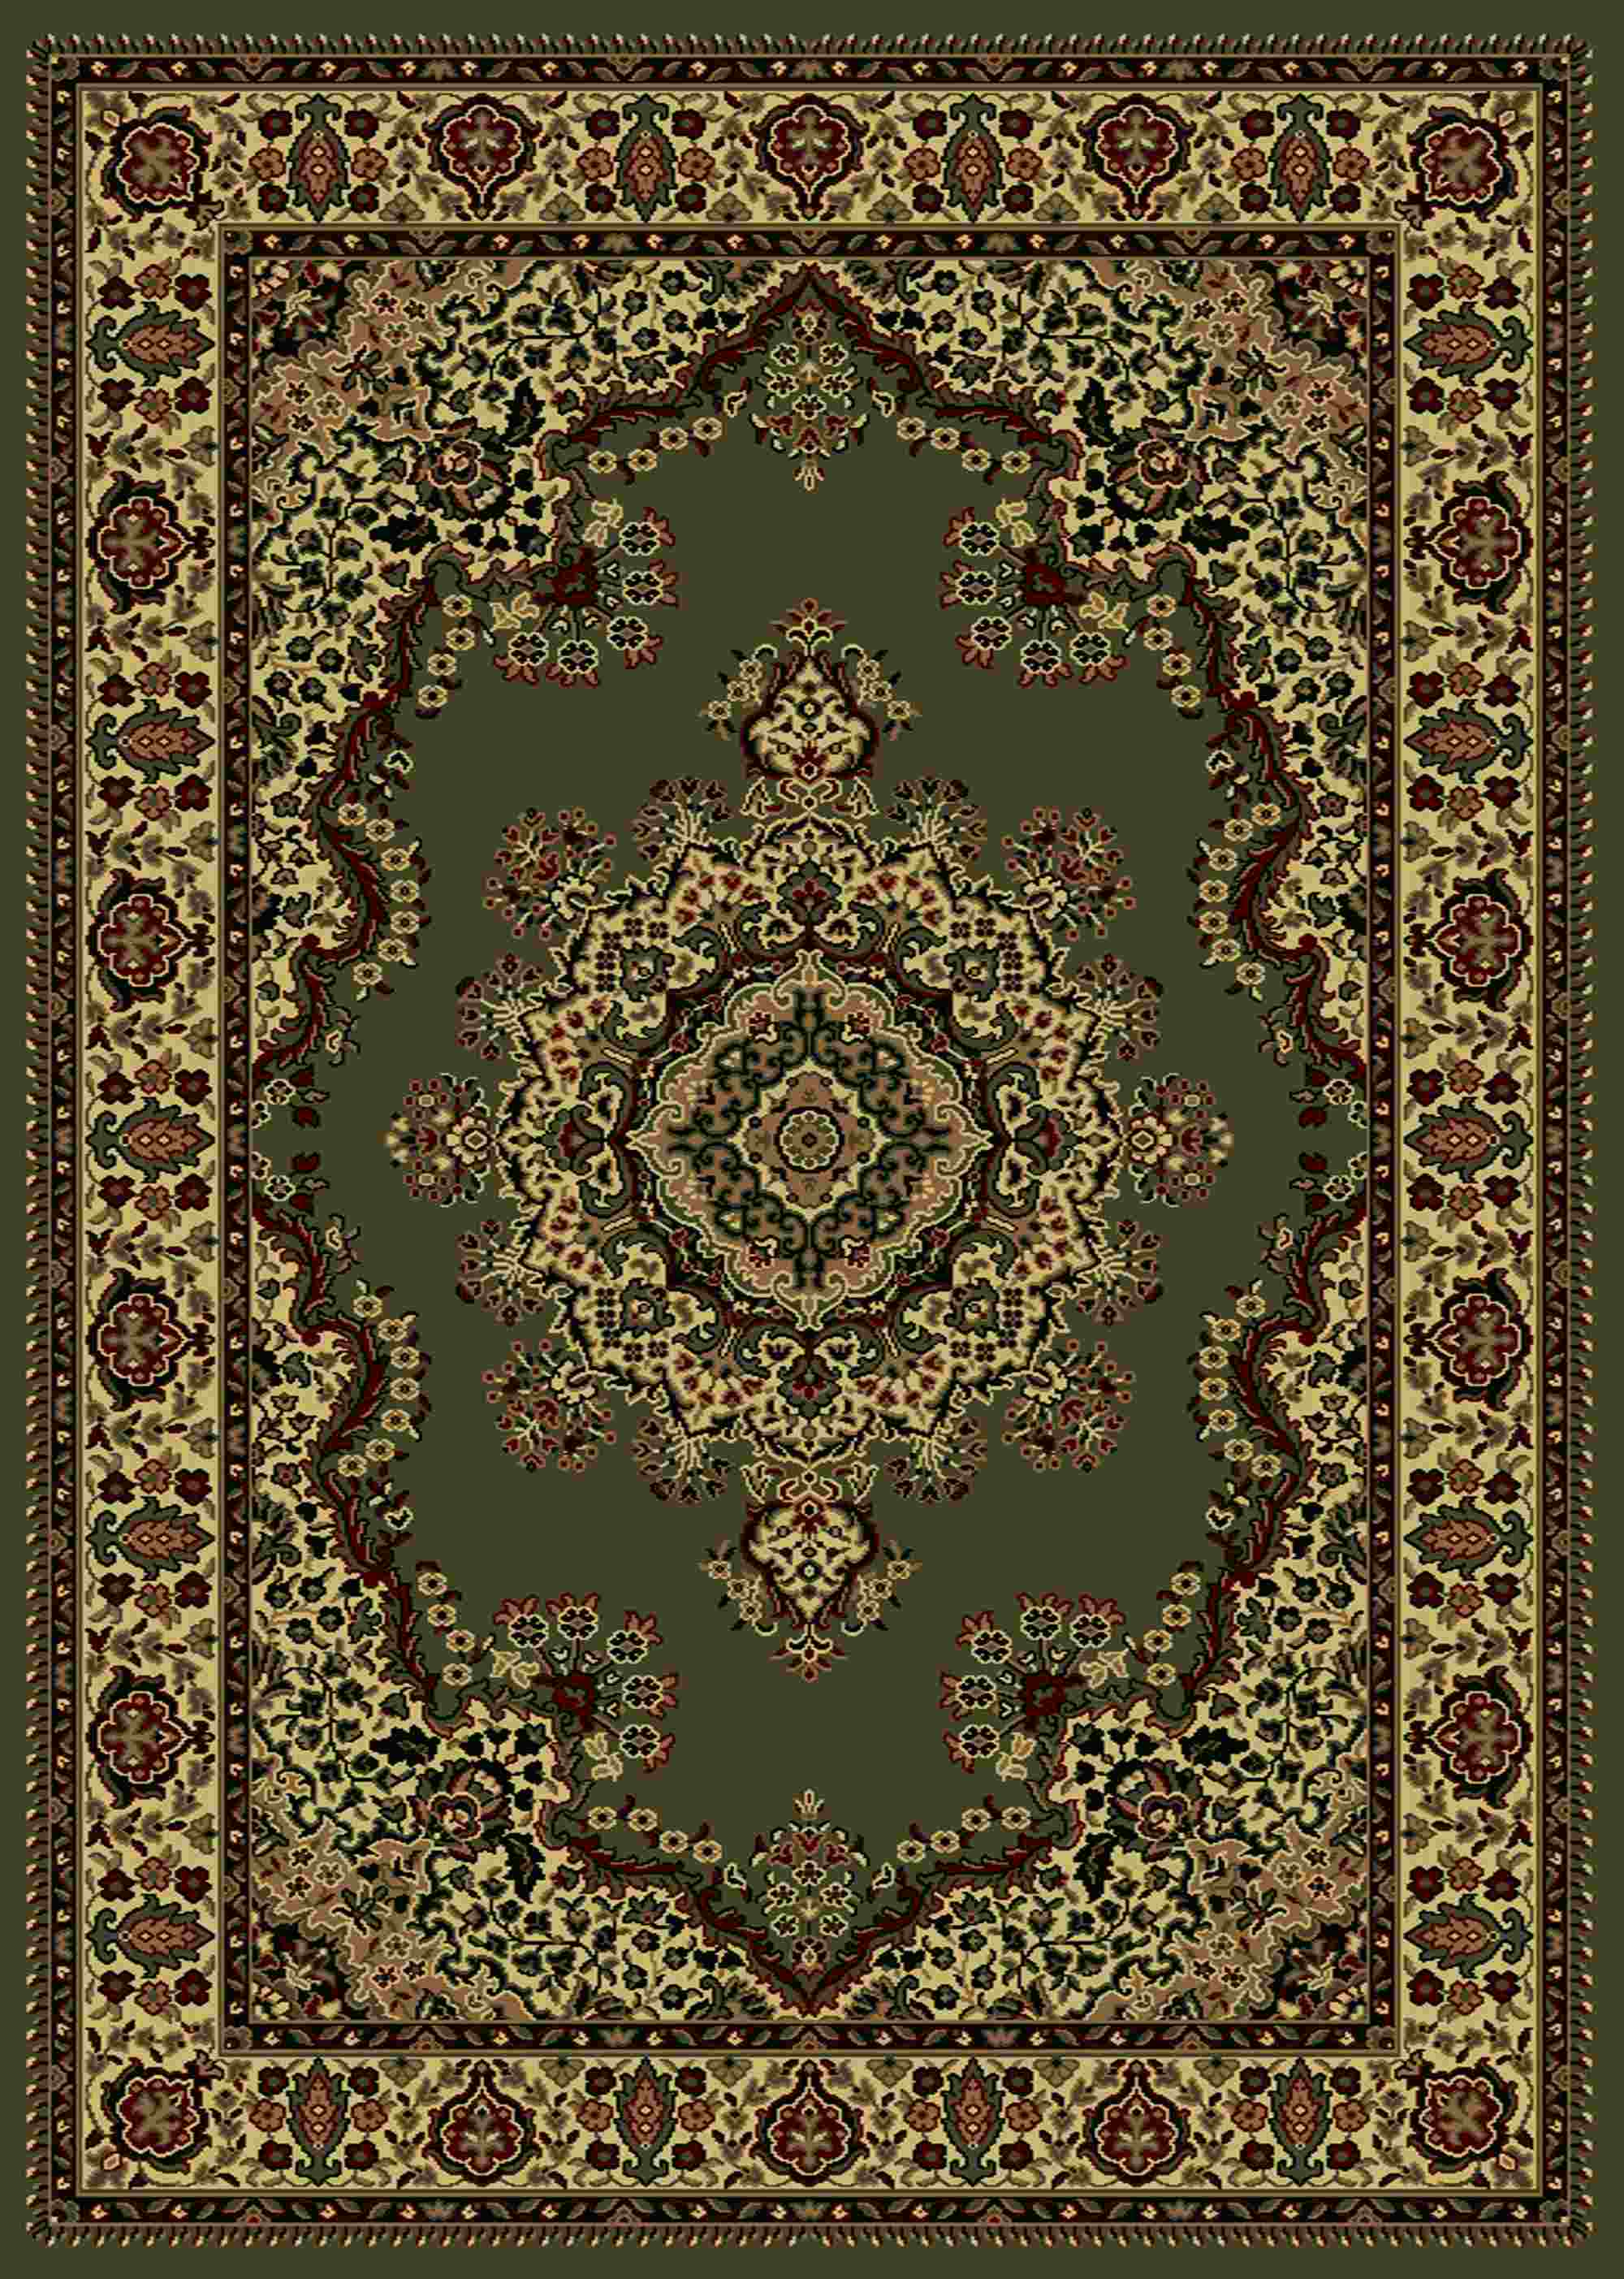 Radici Usa Castello 1191 Green Traditional Area Rug